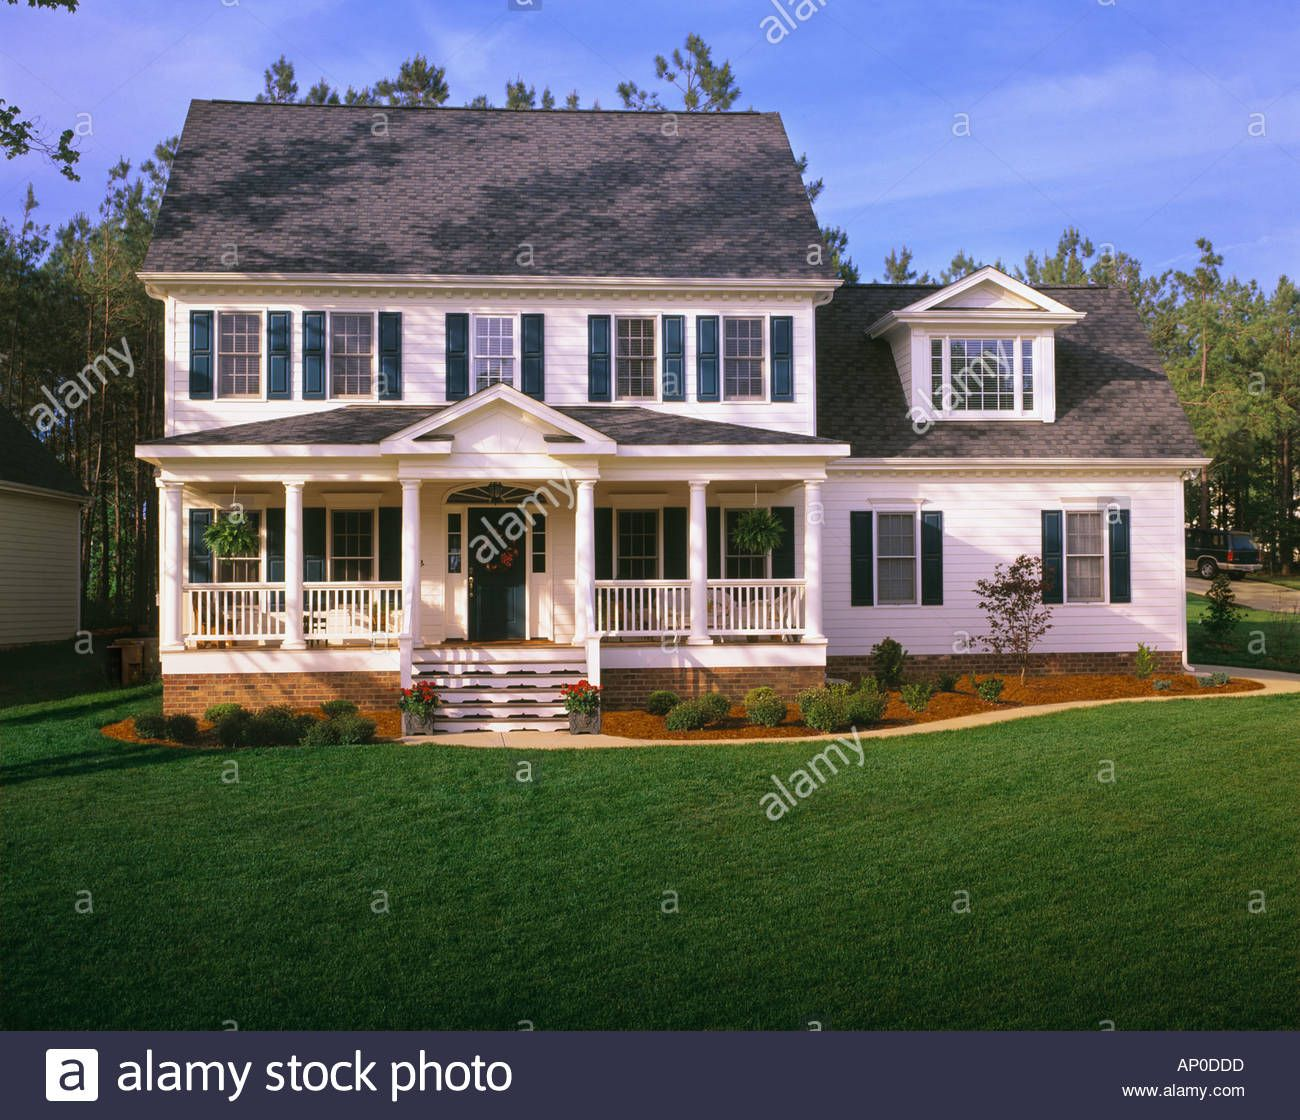 Porch Two Story Front Porch In 2020 House Front Porch House With Porch Exterior House Remodel